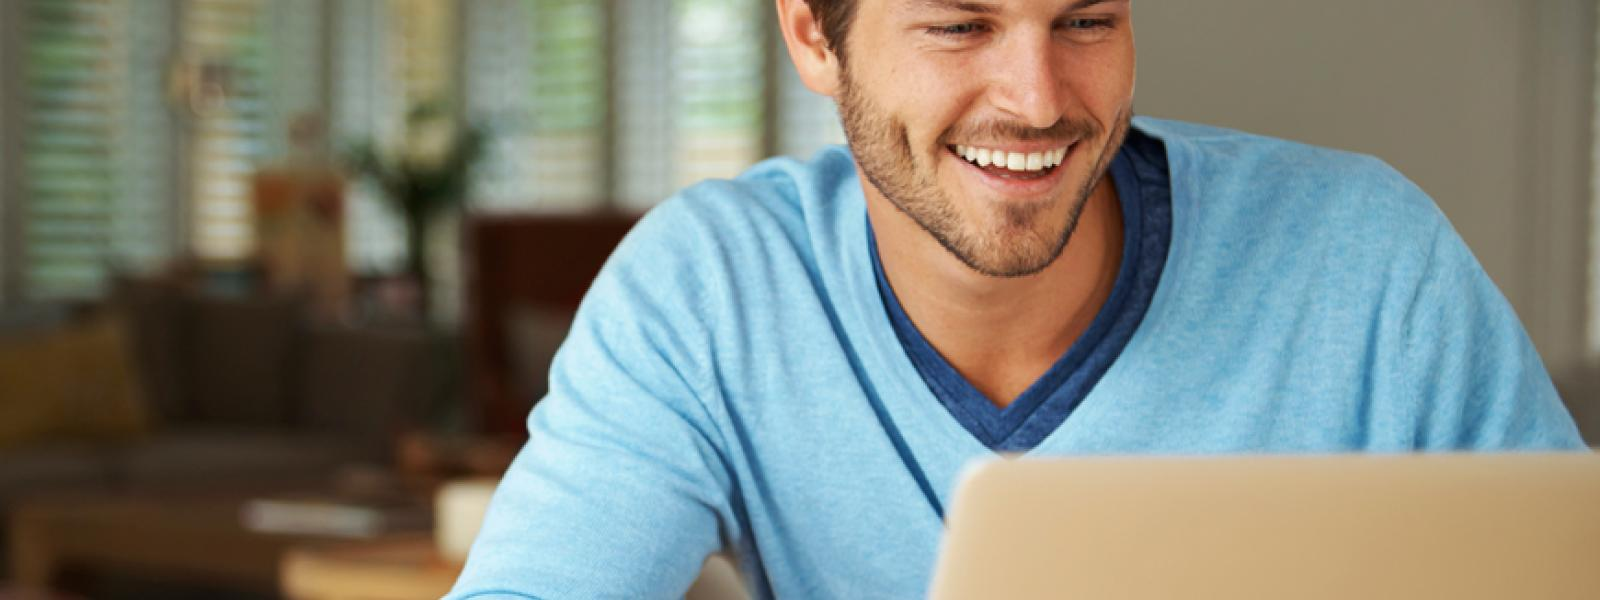 A happy online student using a laptop in a home environment.